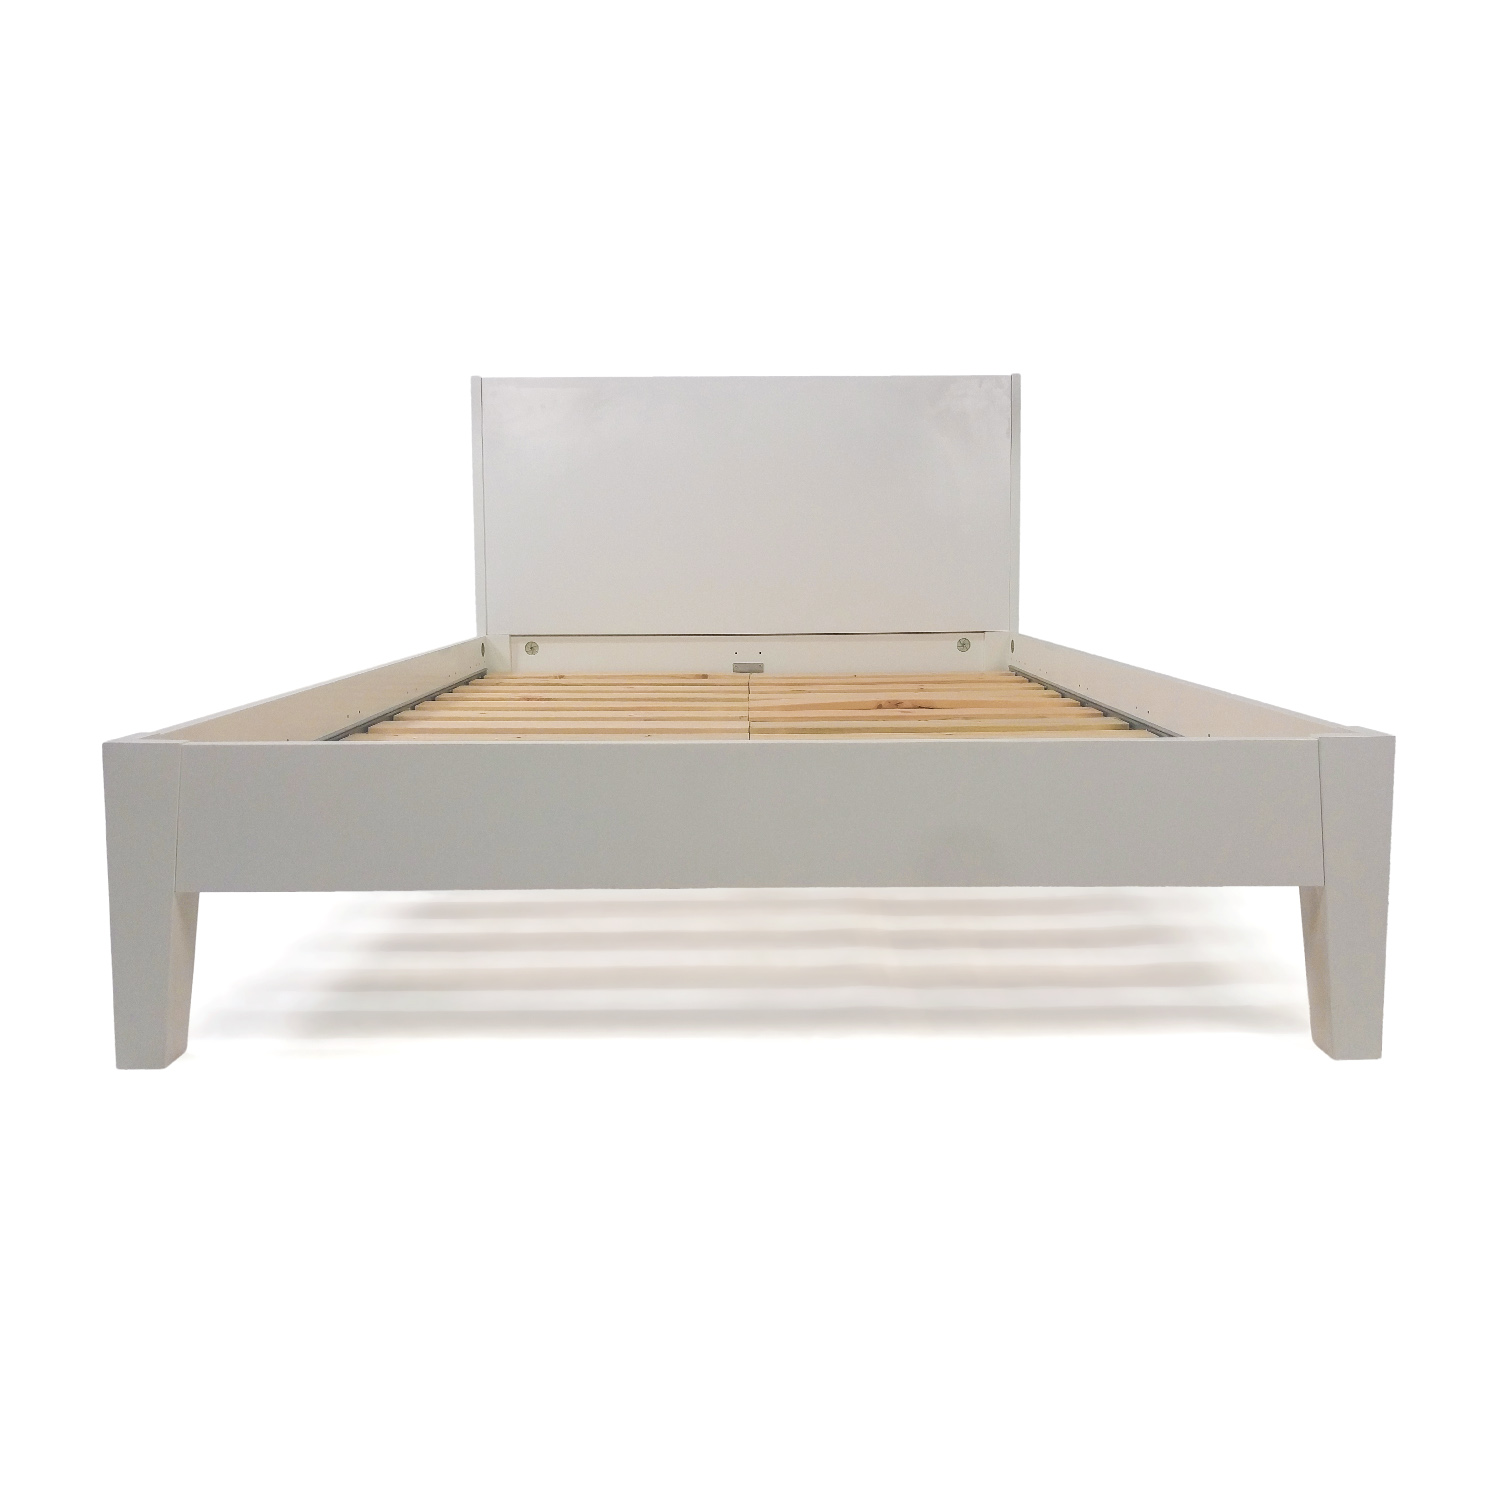 Shop bedframe ikea for Full size bed ikea